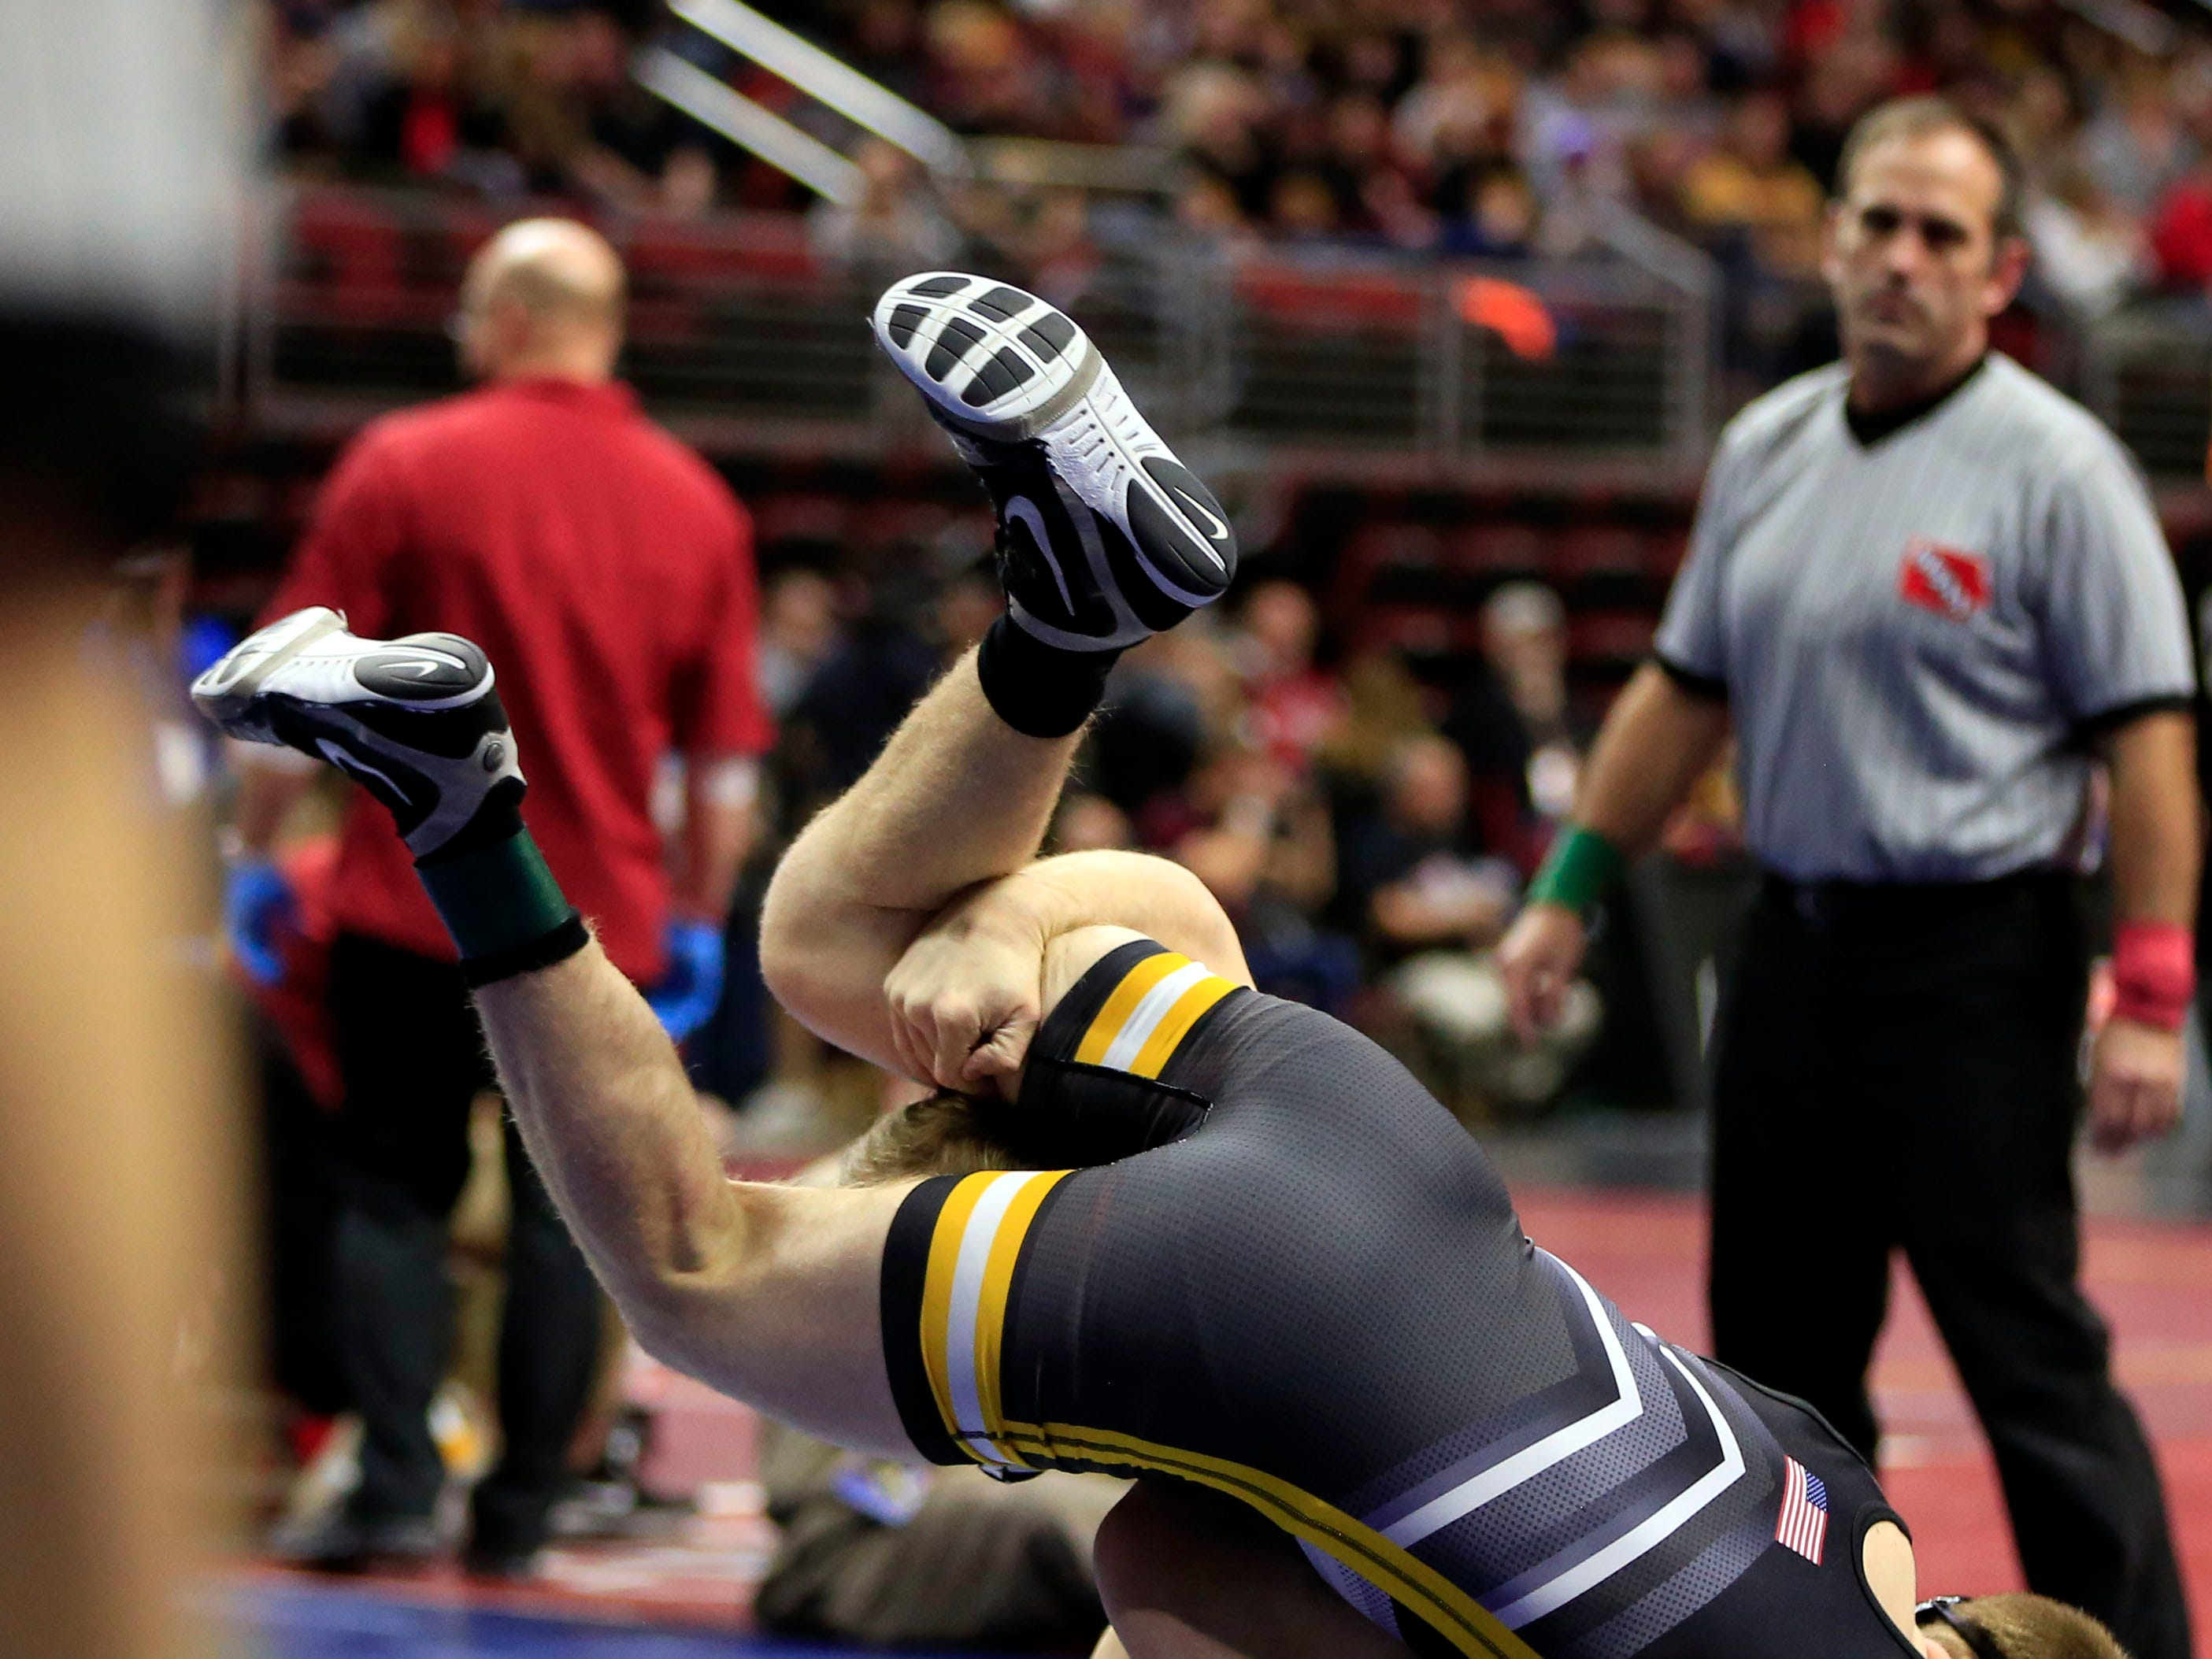 Kaden Anderlik of Crestwood, Cresco defeats Caleb Fuessley of Center Point-Urbana during a 120 Lb 2A quarterfinal match at the state wrestling tournament Friday, Feb. 15, 2019.